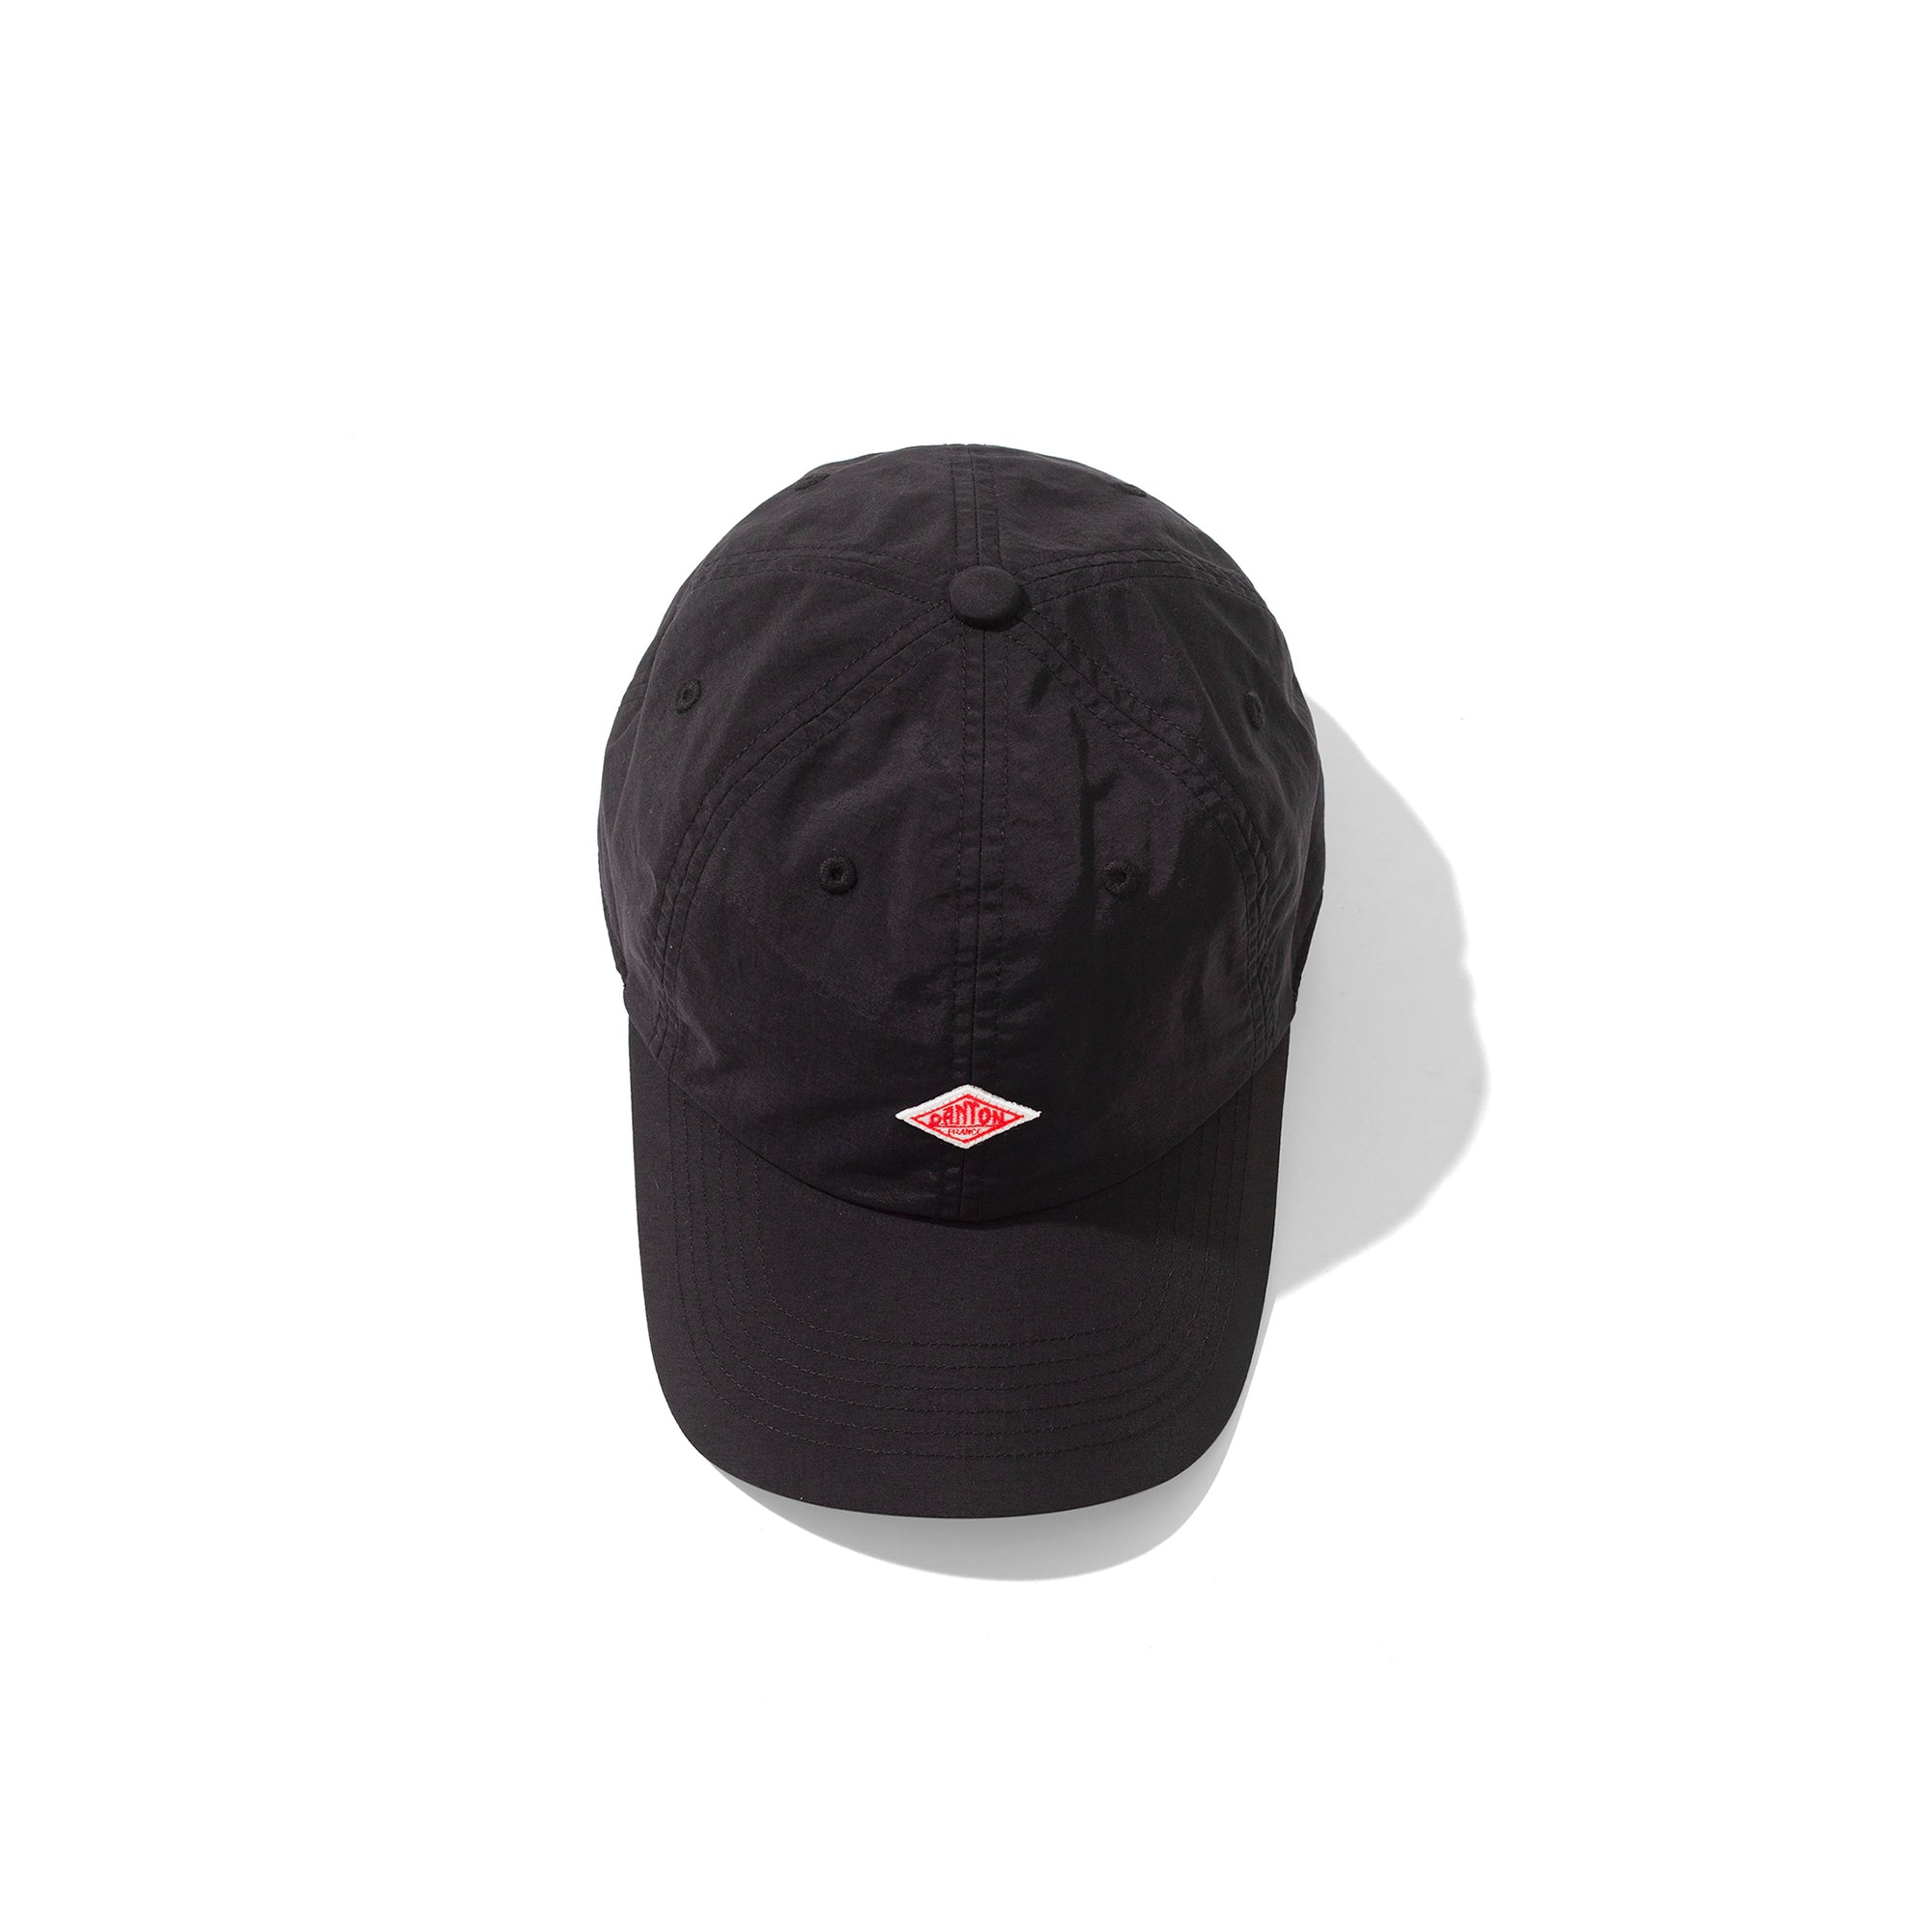 Danton Nylon Cap: Black - The Union Project